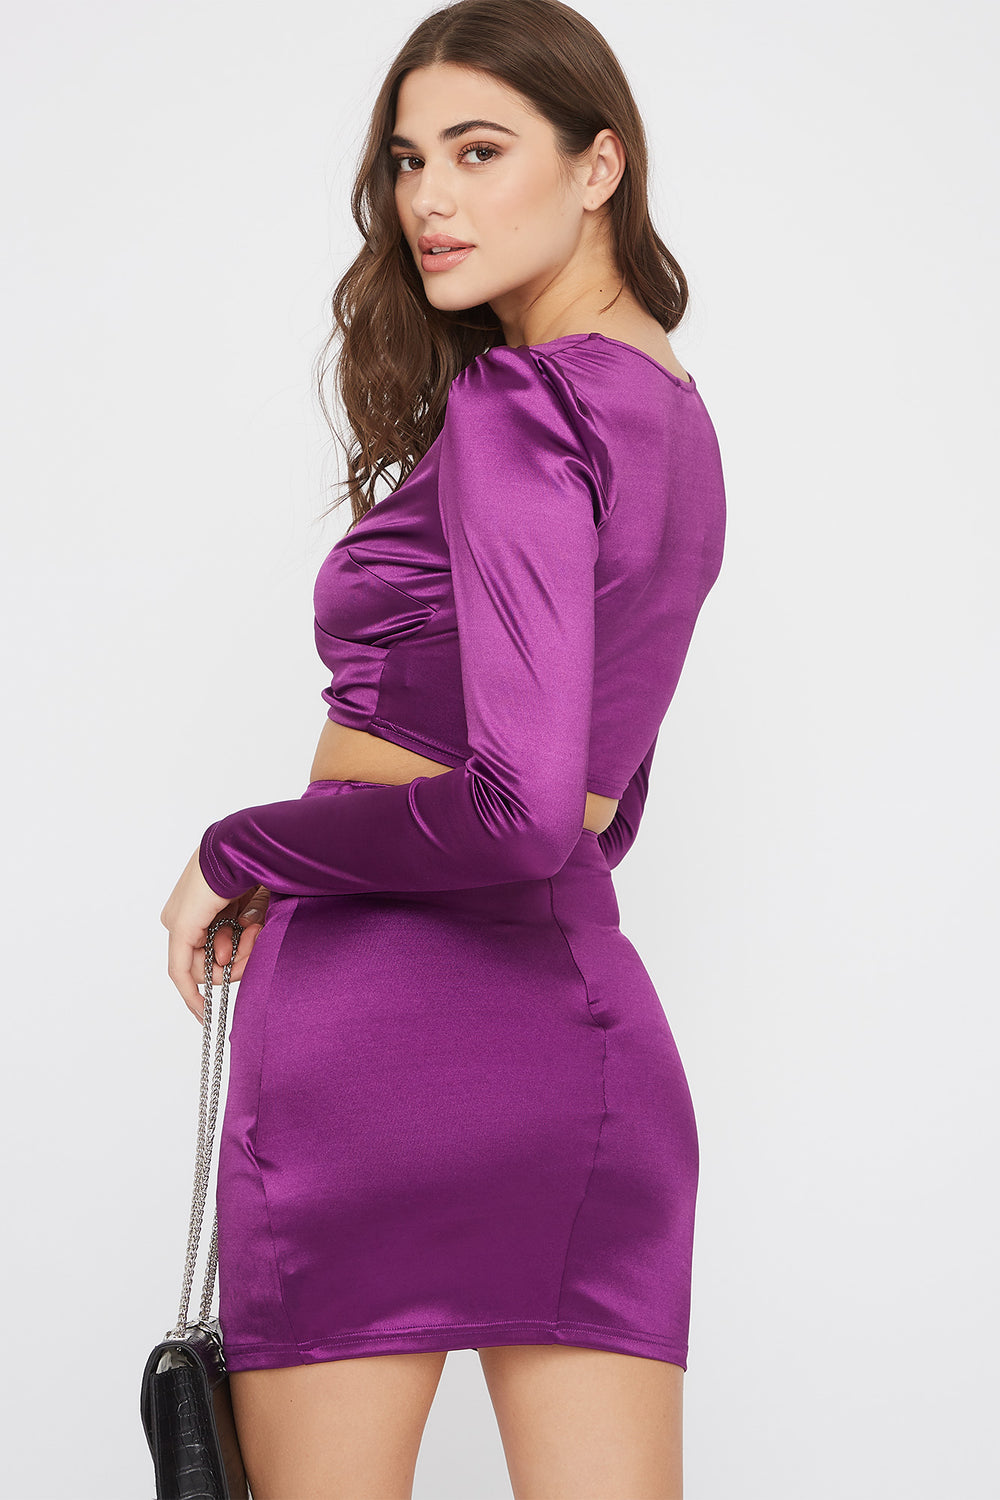 Satin Solid Tulip Mini Skirt Purple